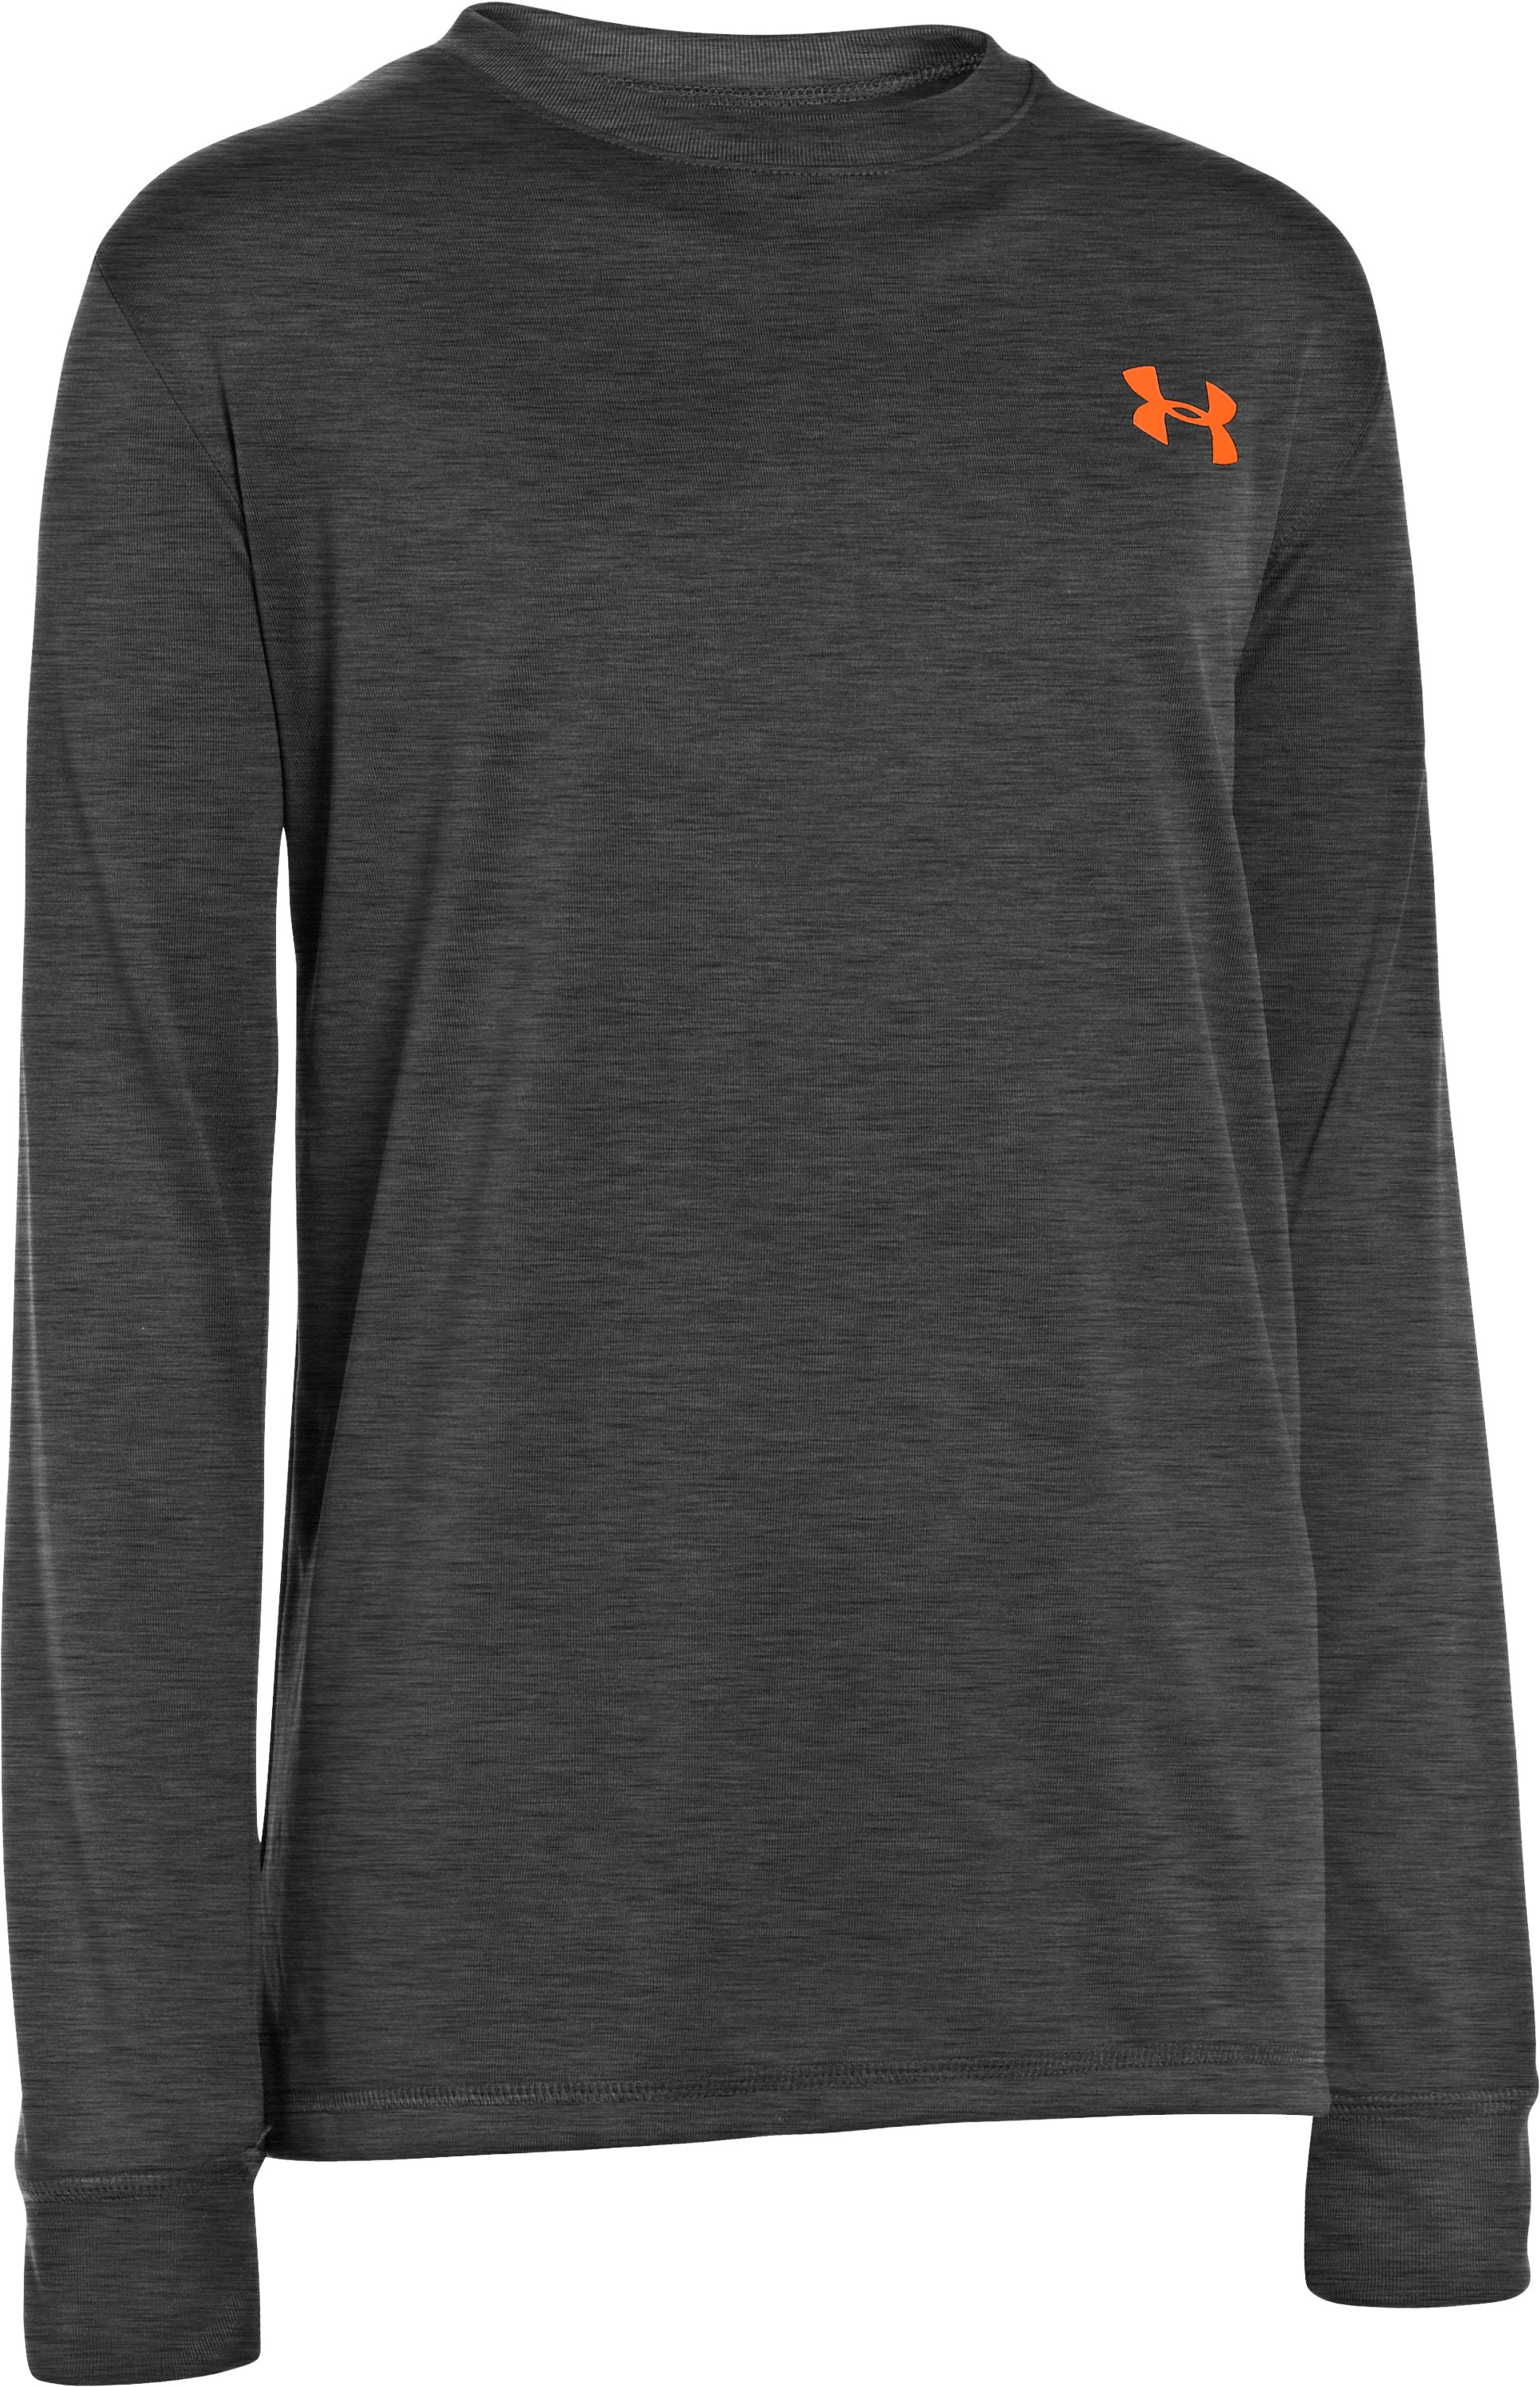 Boys' UA Cray Long Sleeve T-Shirt, Carbon Heather